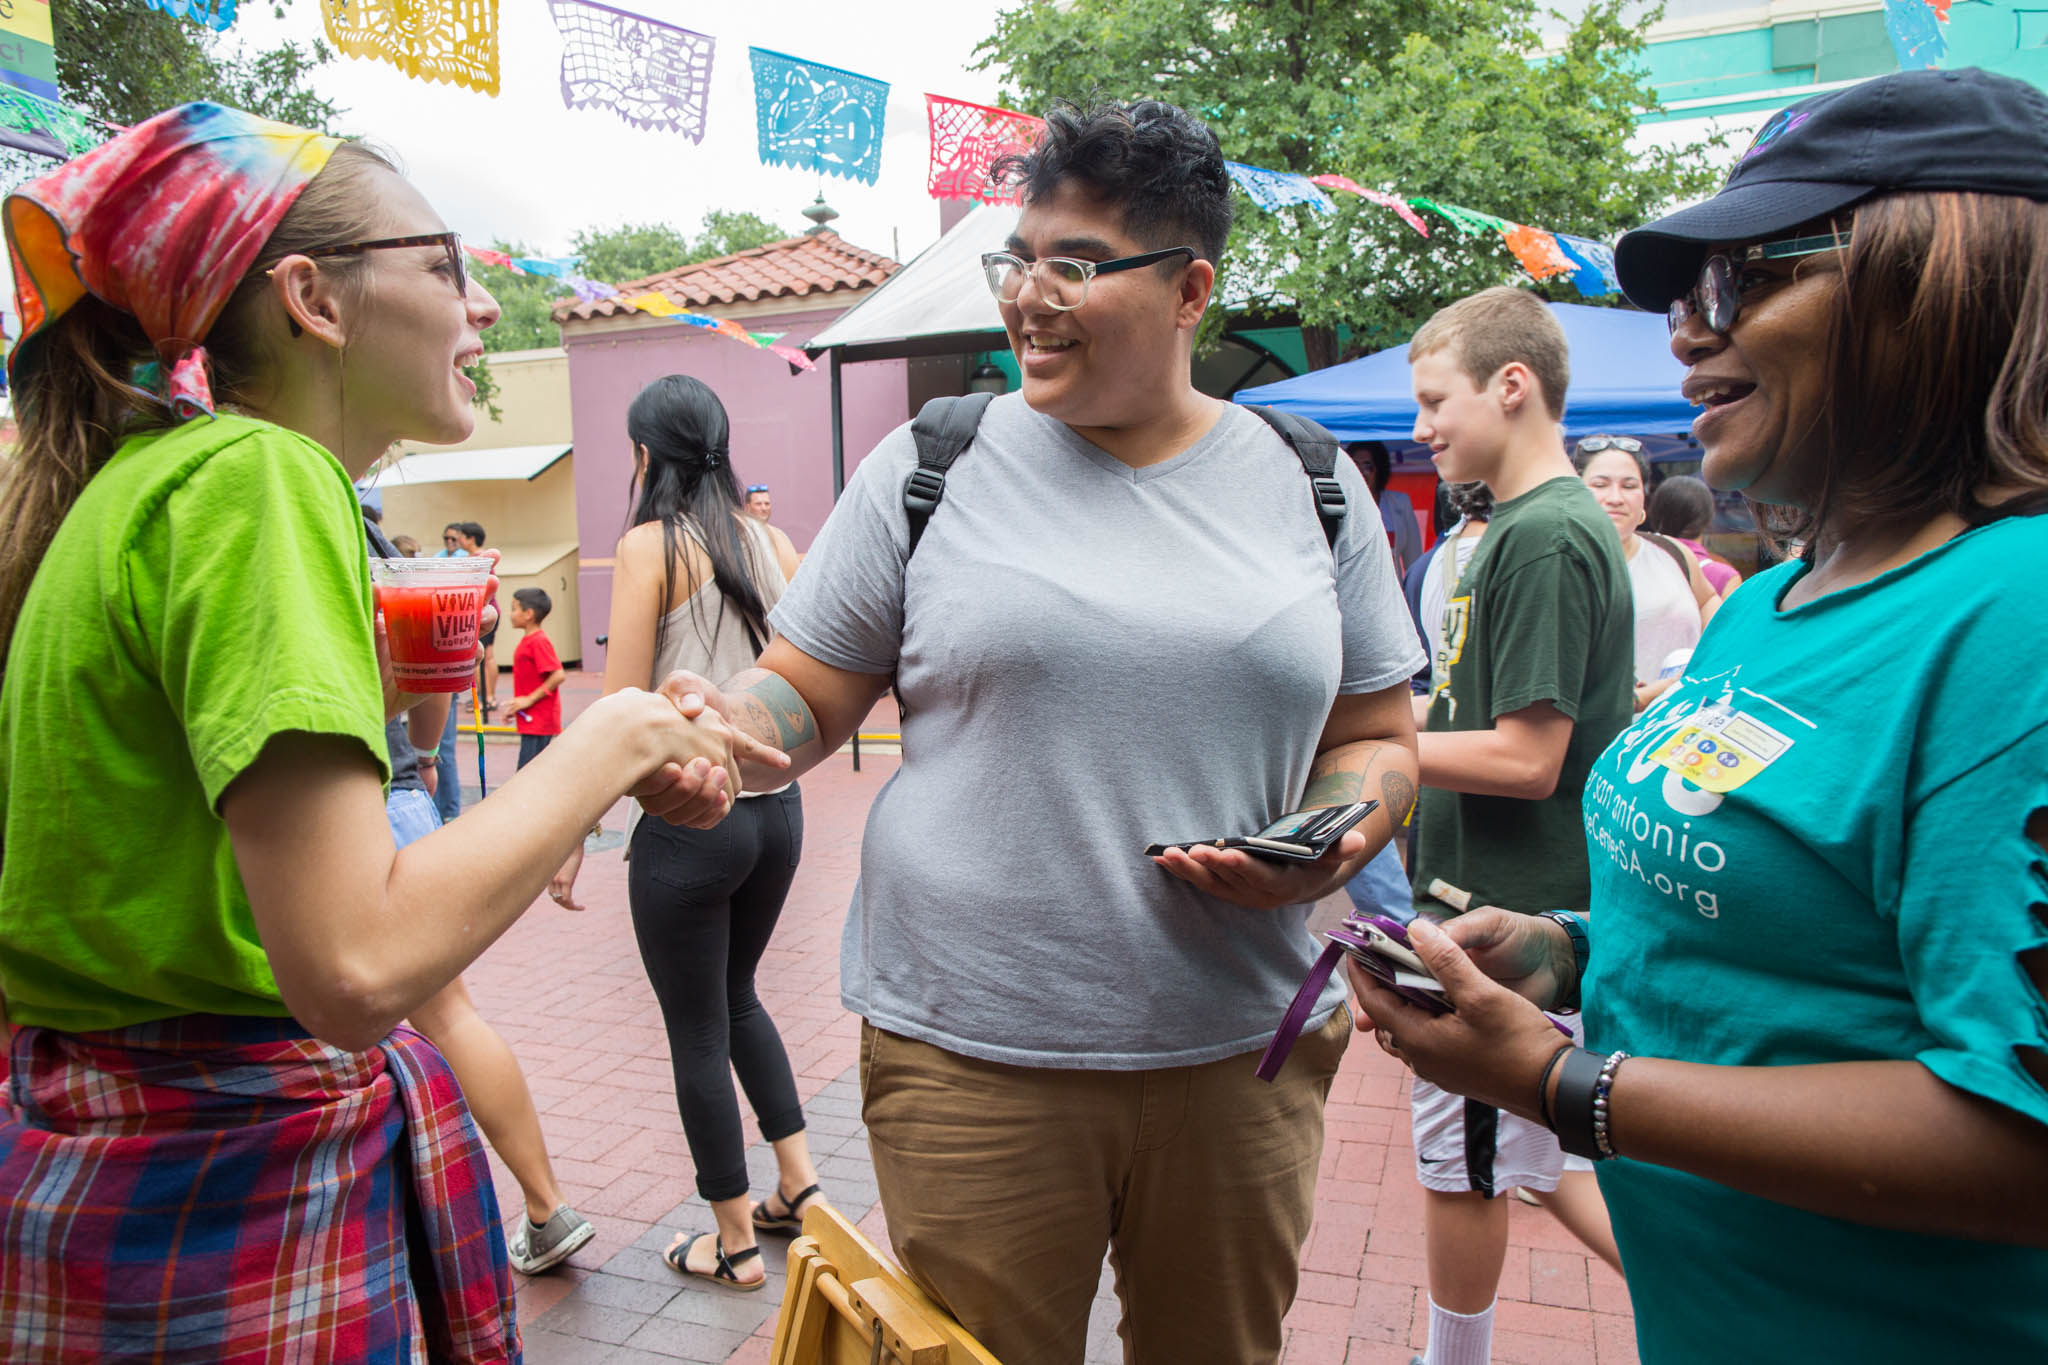 Alyson Alonzo (middle) greets fans as they congratulate her performance at the Family Pride Fair. Photo by Michael Cirlos.